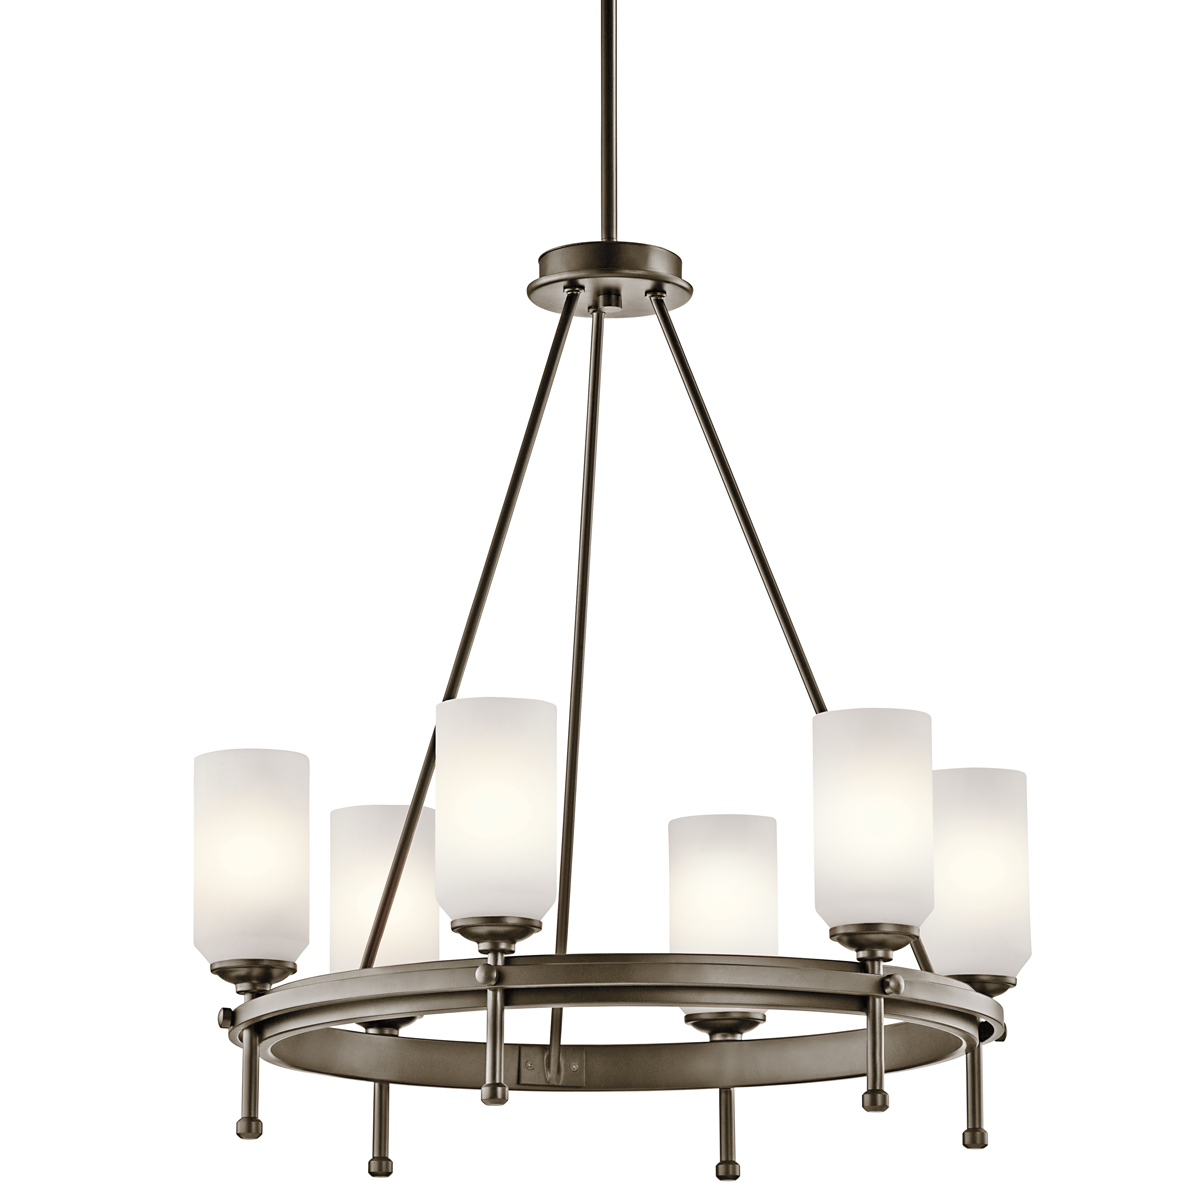 Kichler 42947SWZ Ladero Collection Chandelier 6 Light in Shadow Bronze